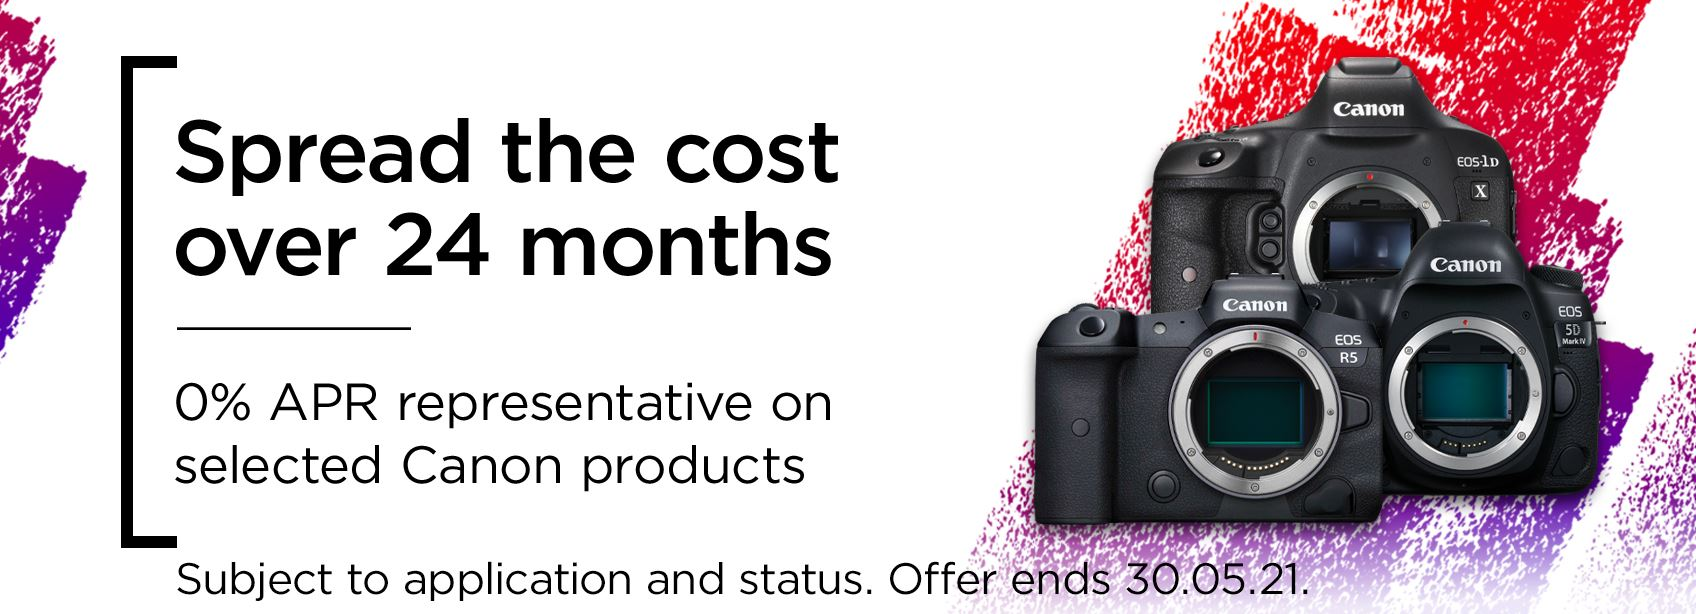 Spread the cost over 24 months - 0% PAR representative on selected Canon products